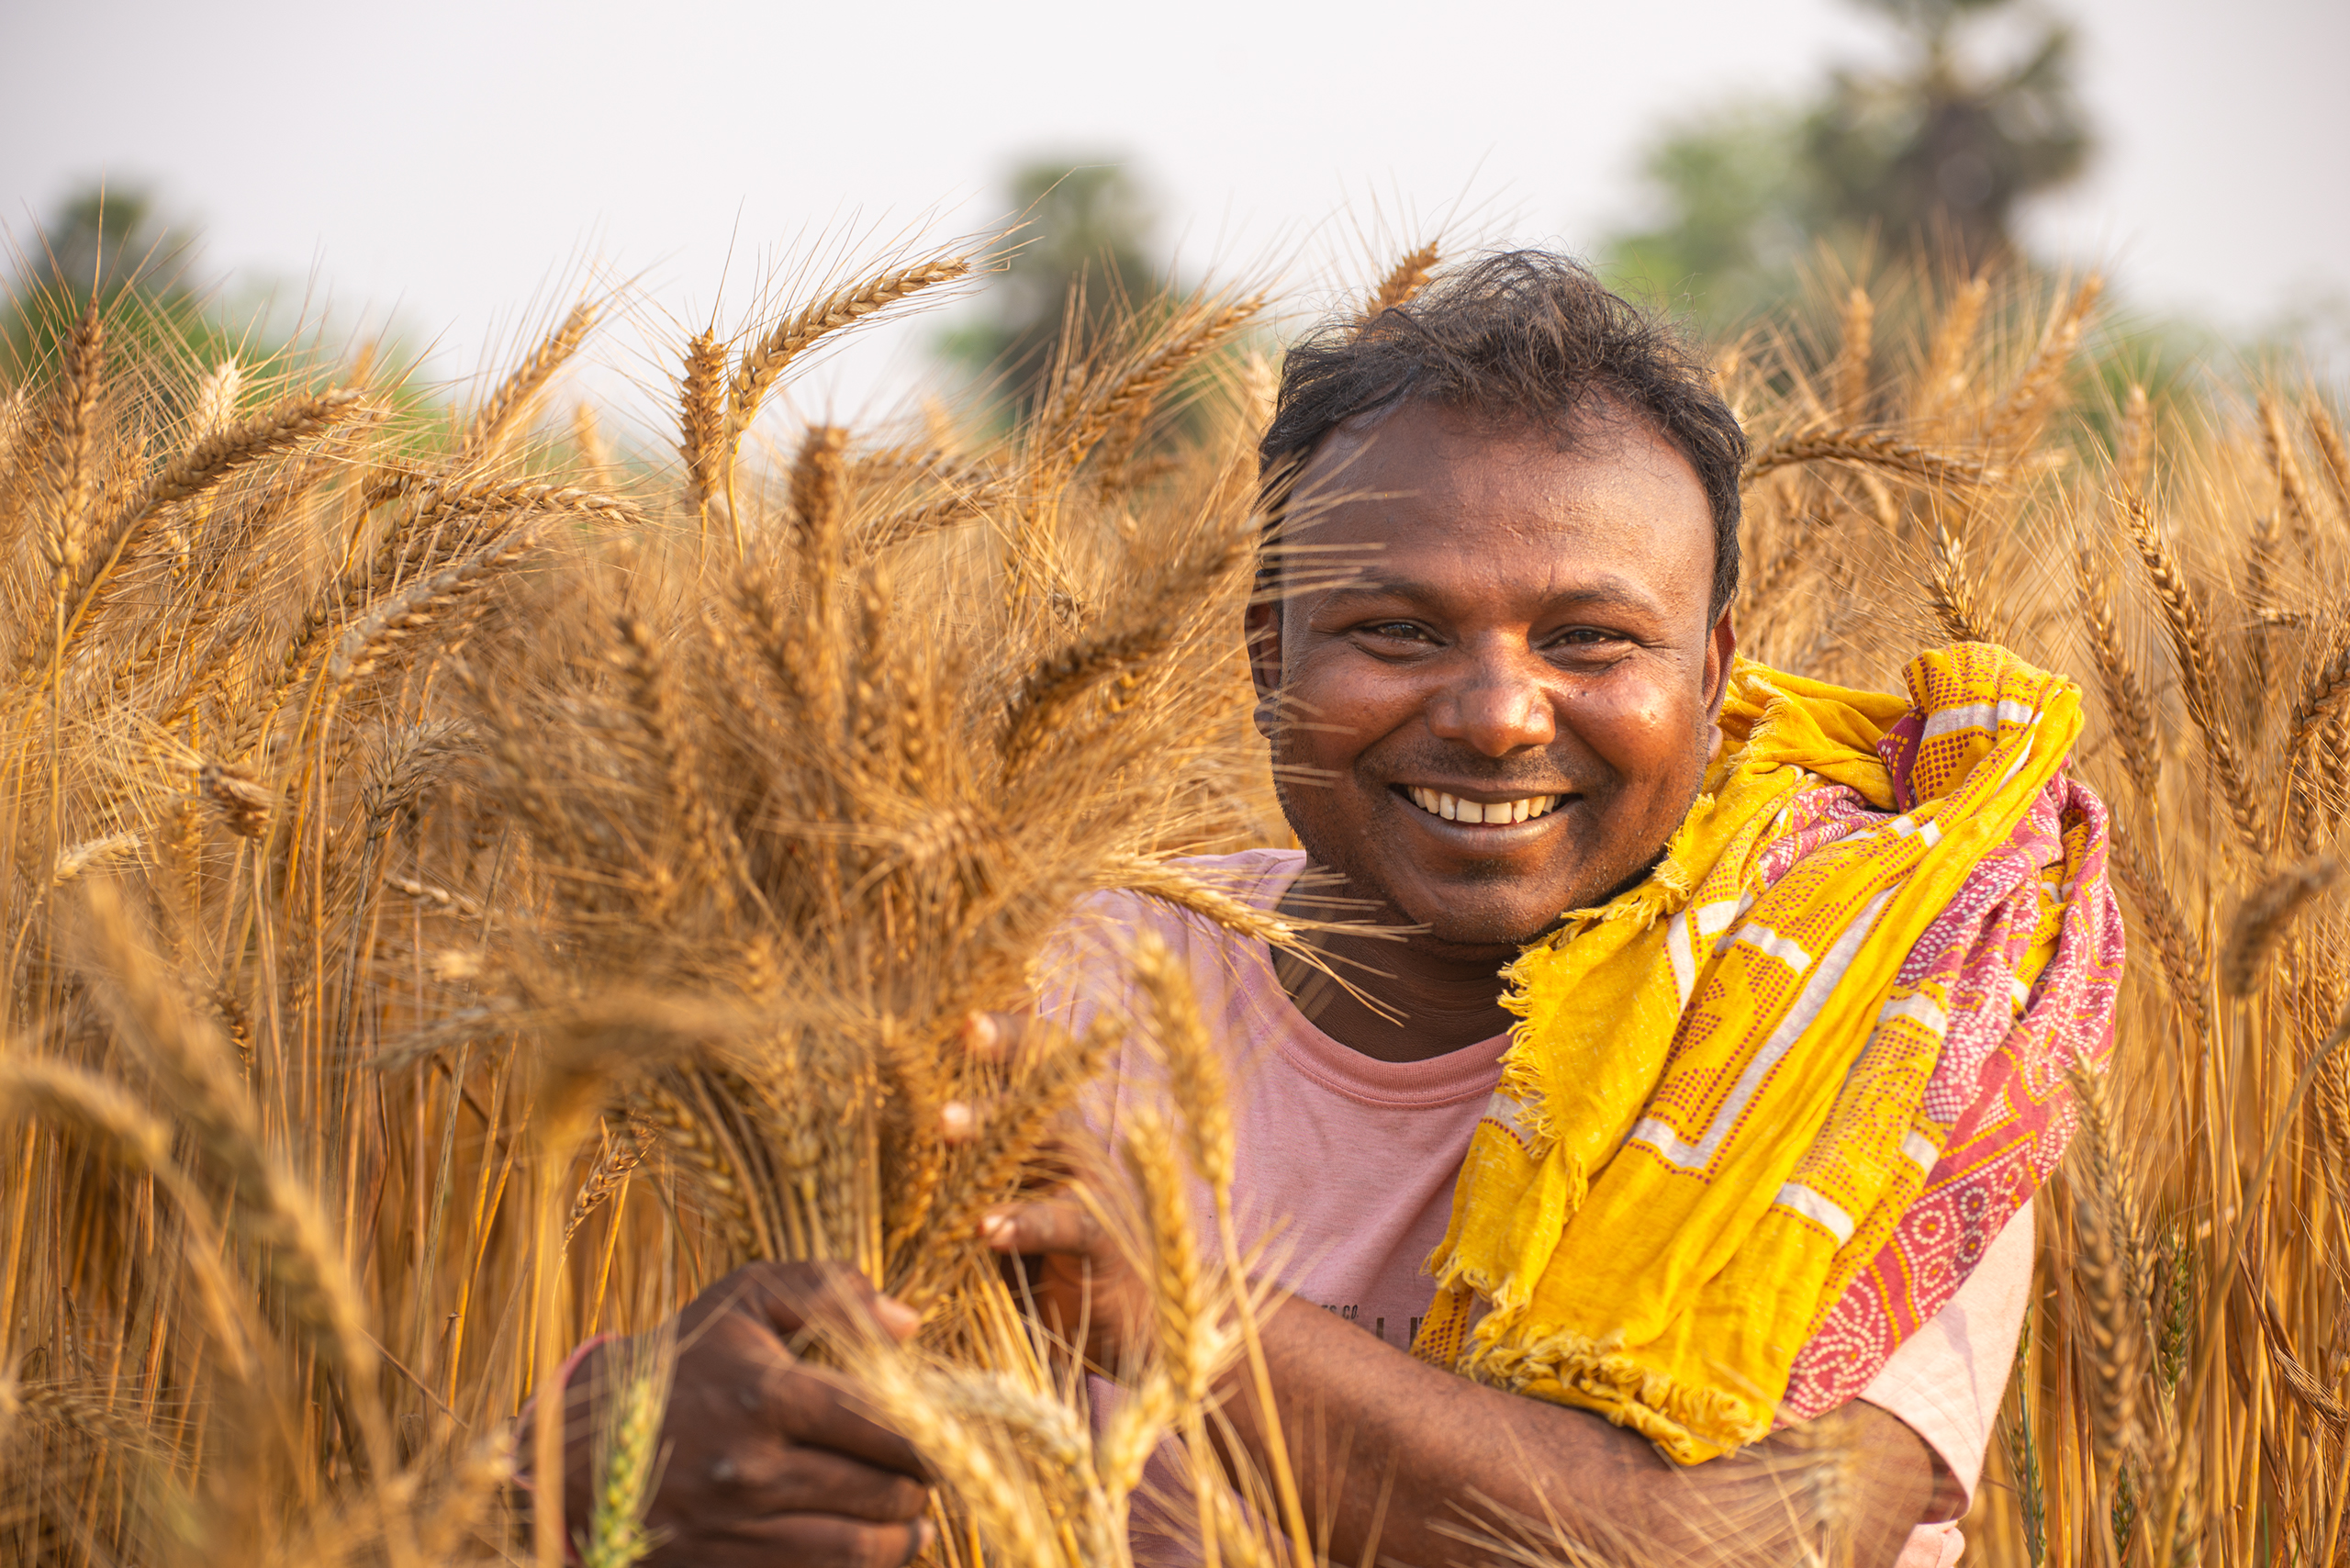 India's farmers feed millions of people. (Photo: Dakshinamurthy Vedachalam)